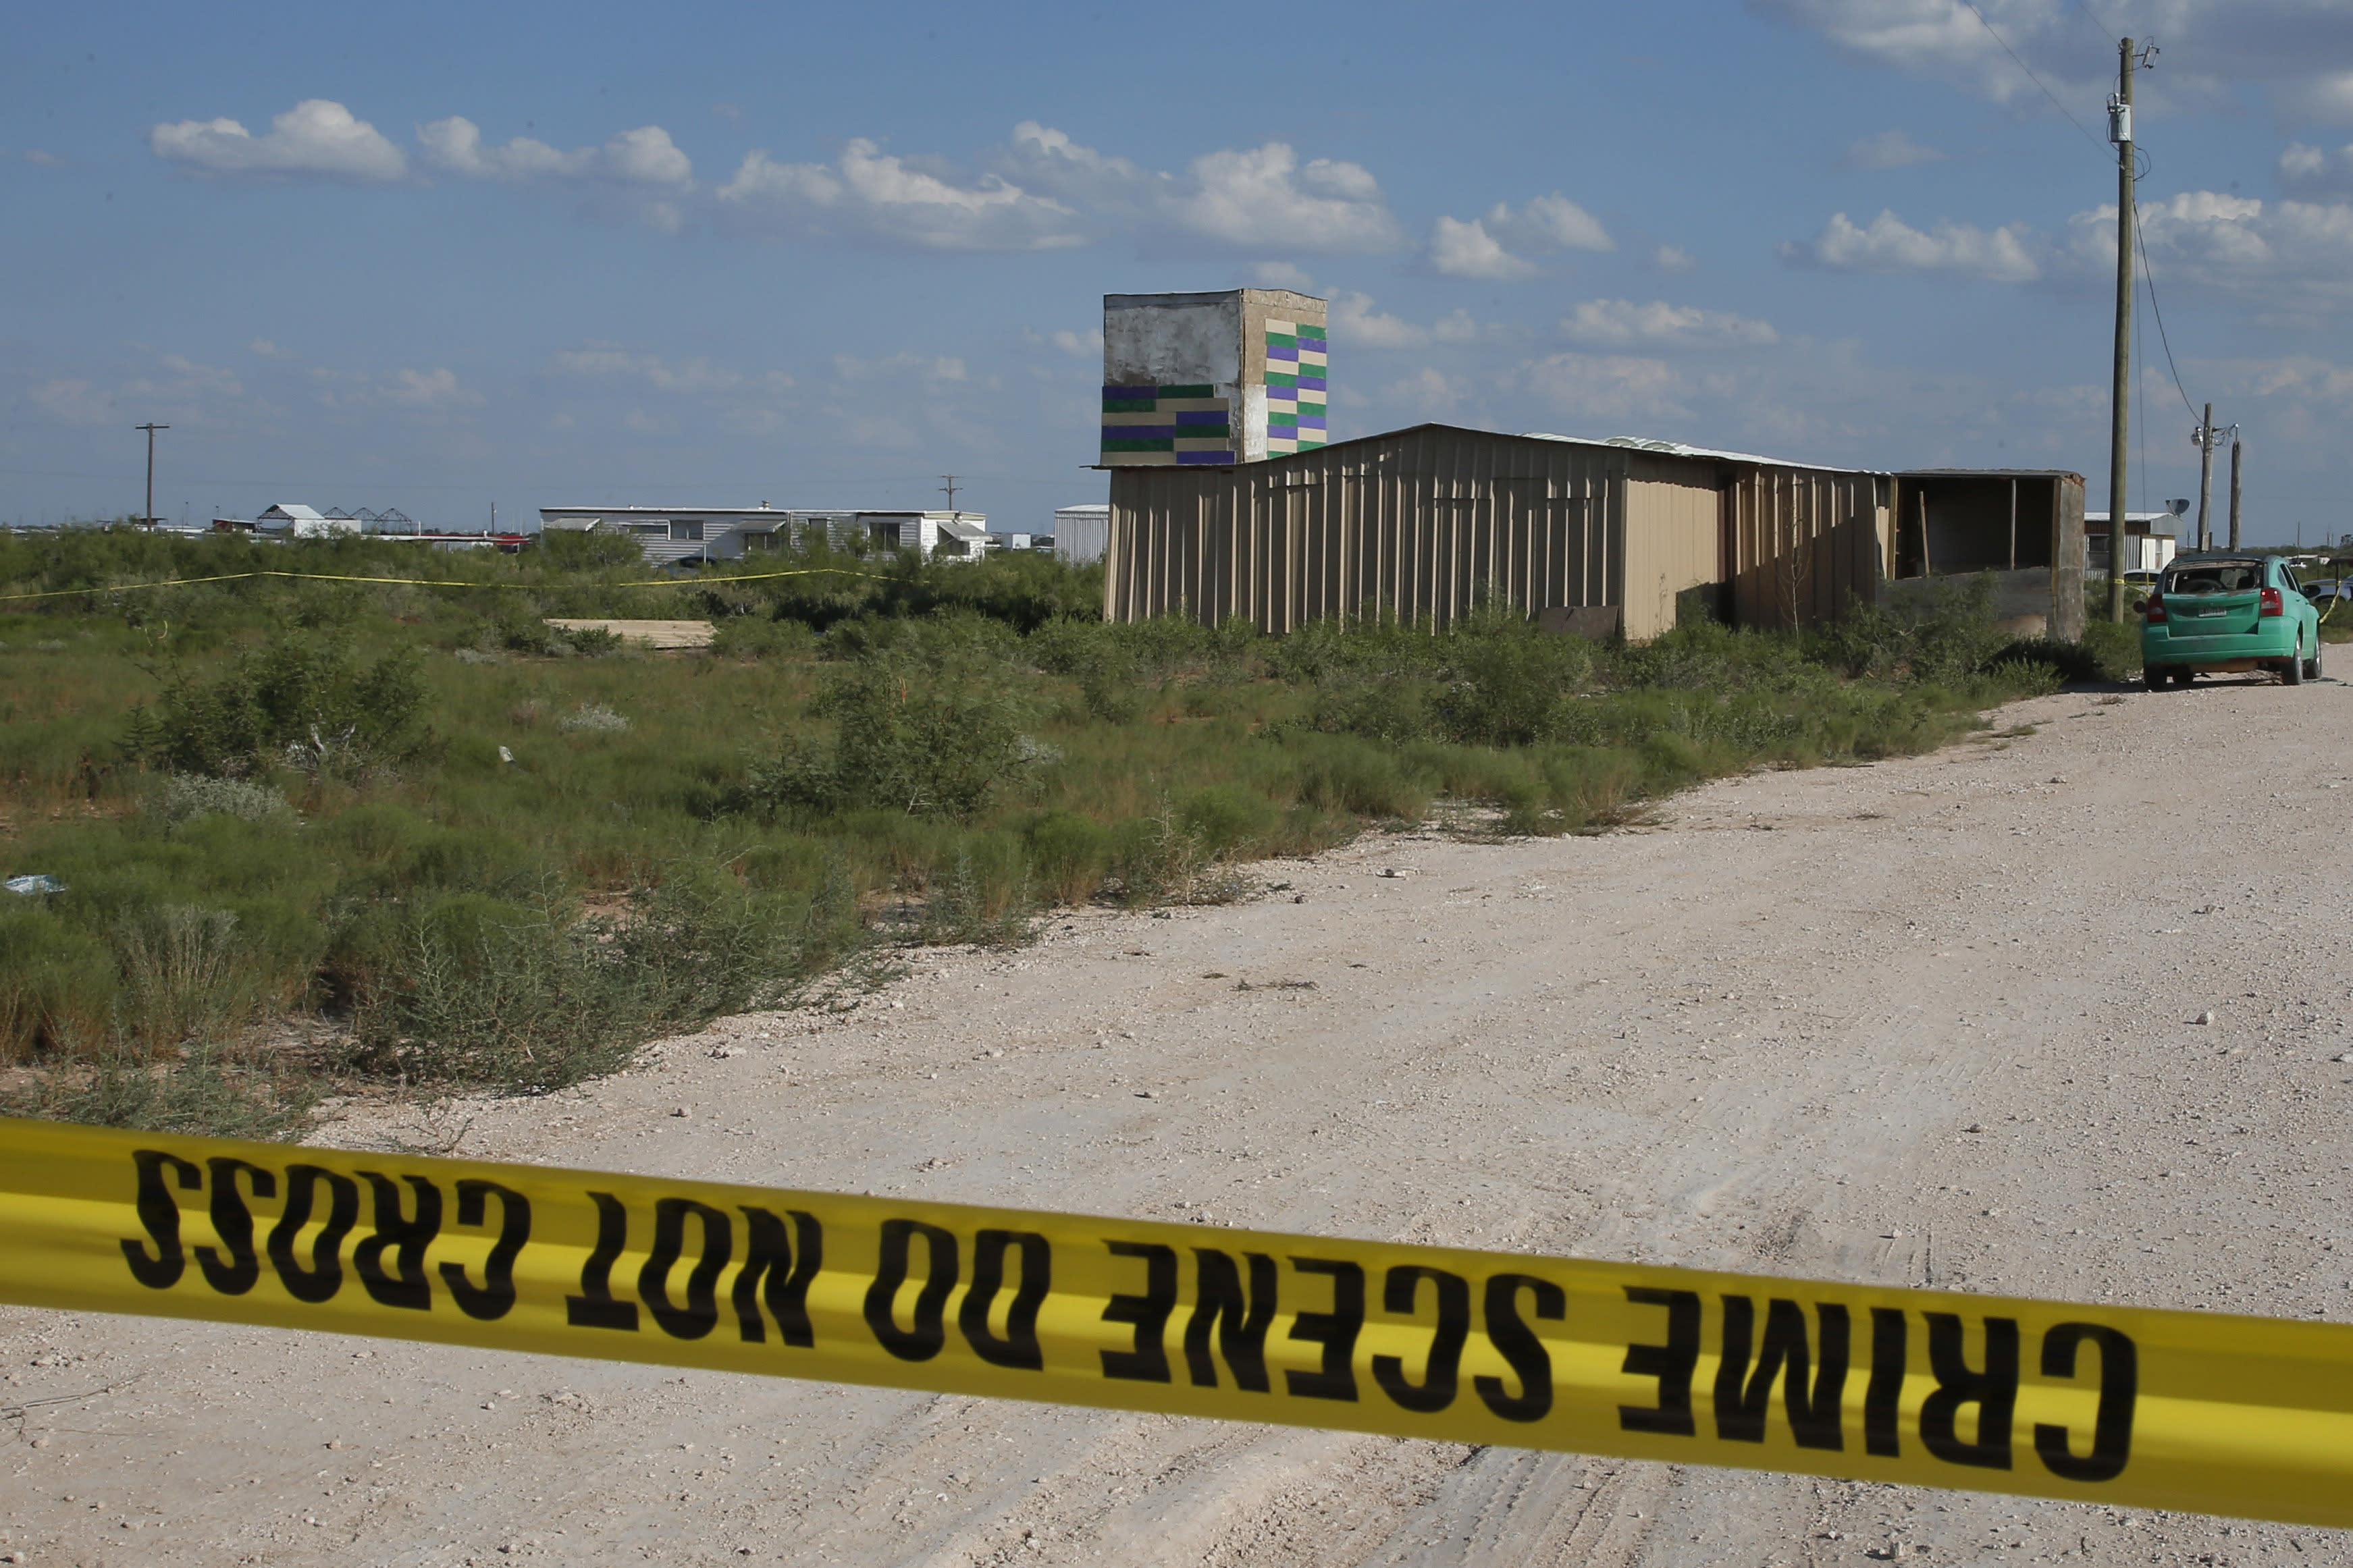 Feds Order Texas To Comply With Special >> Official Feds Search Home For Link To Gun In Texas Shooting